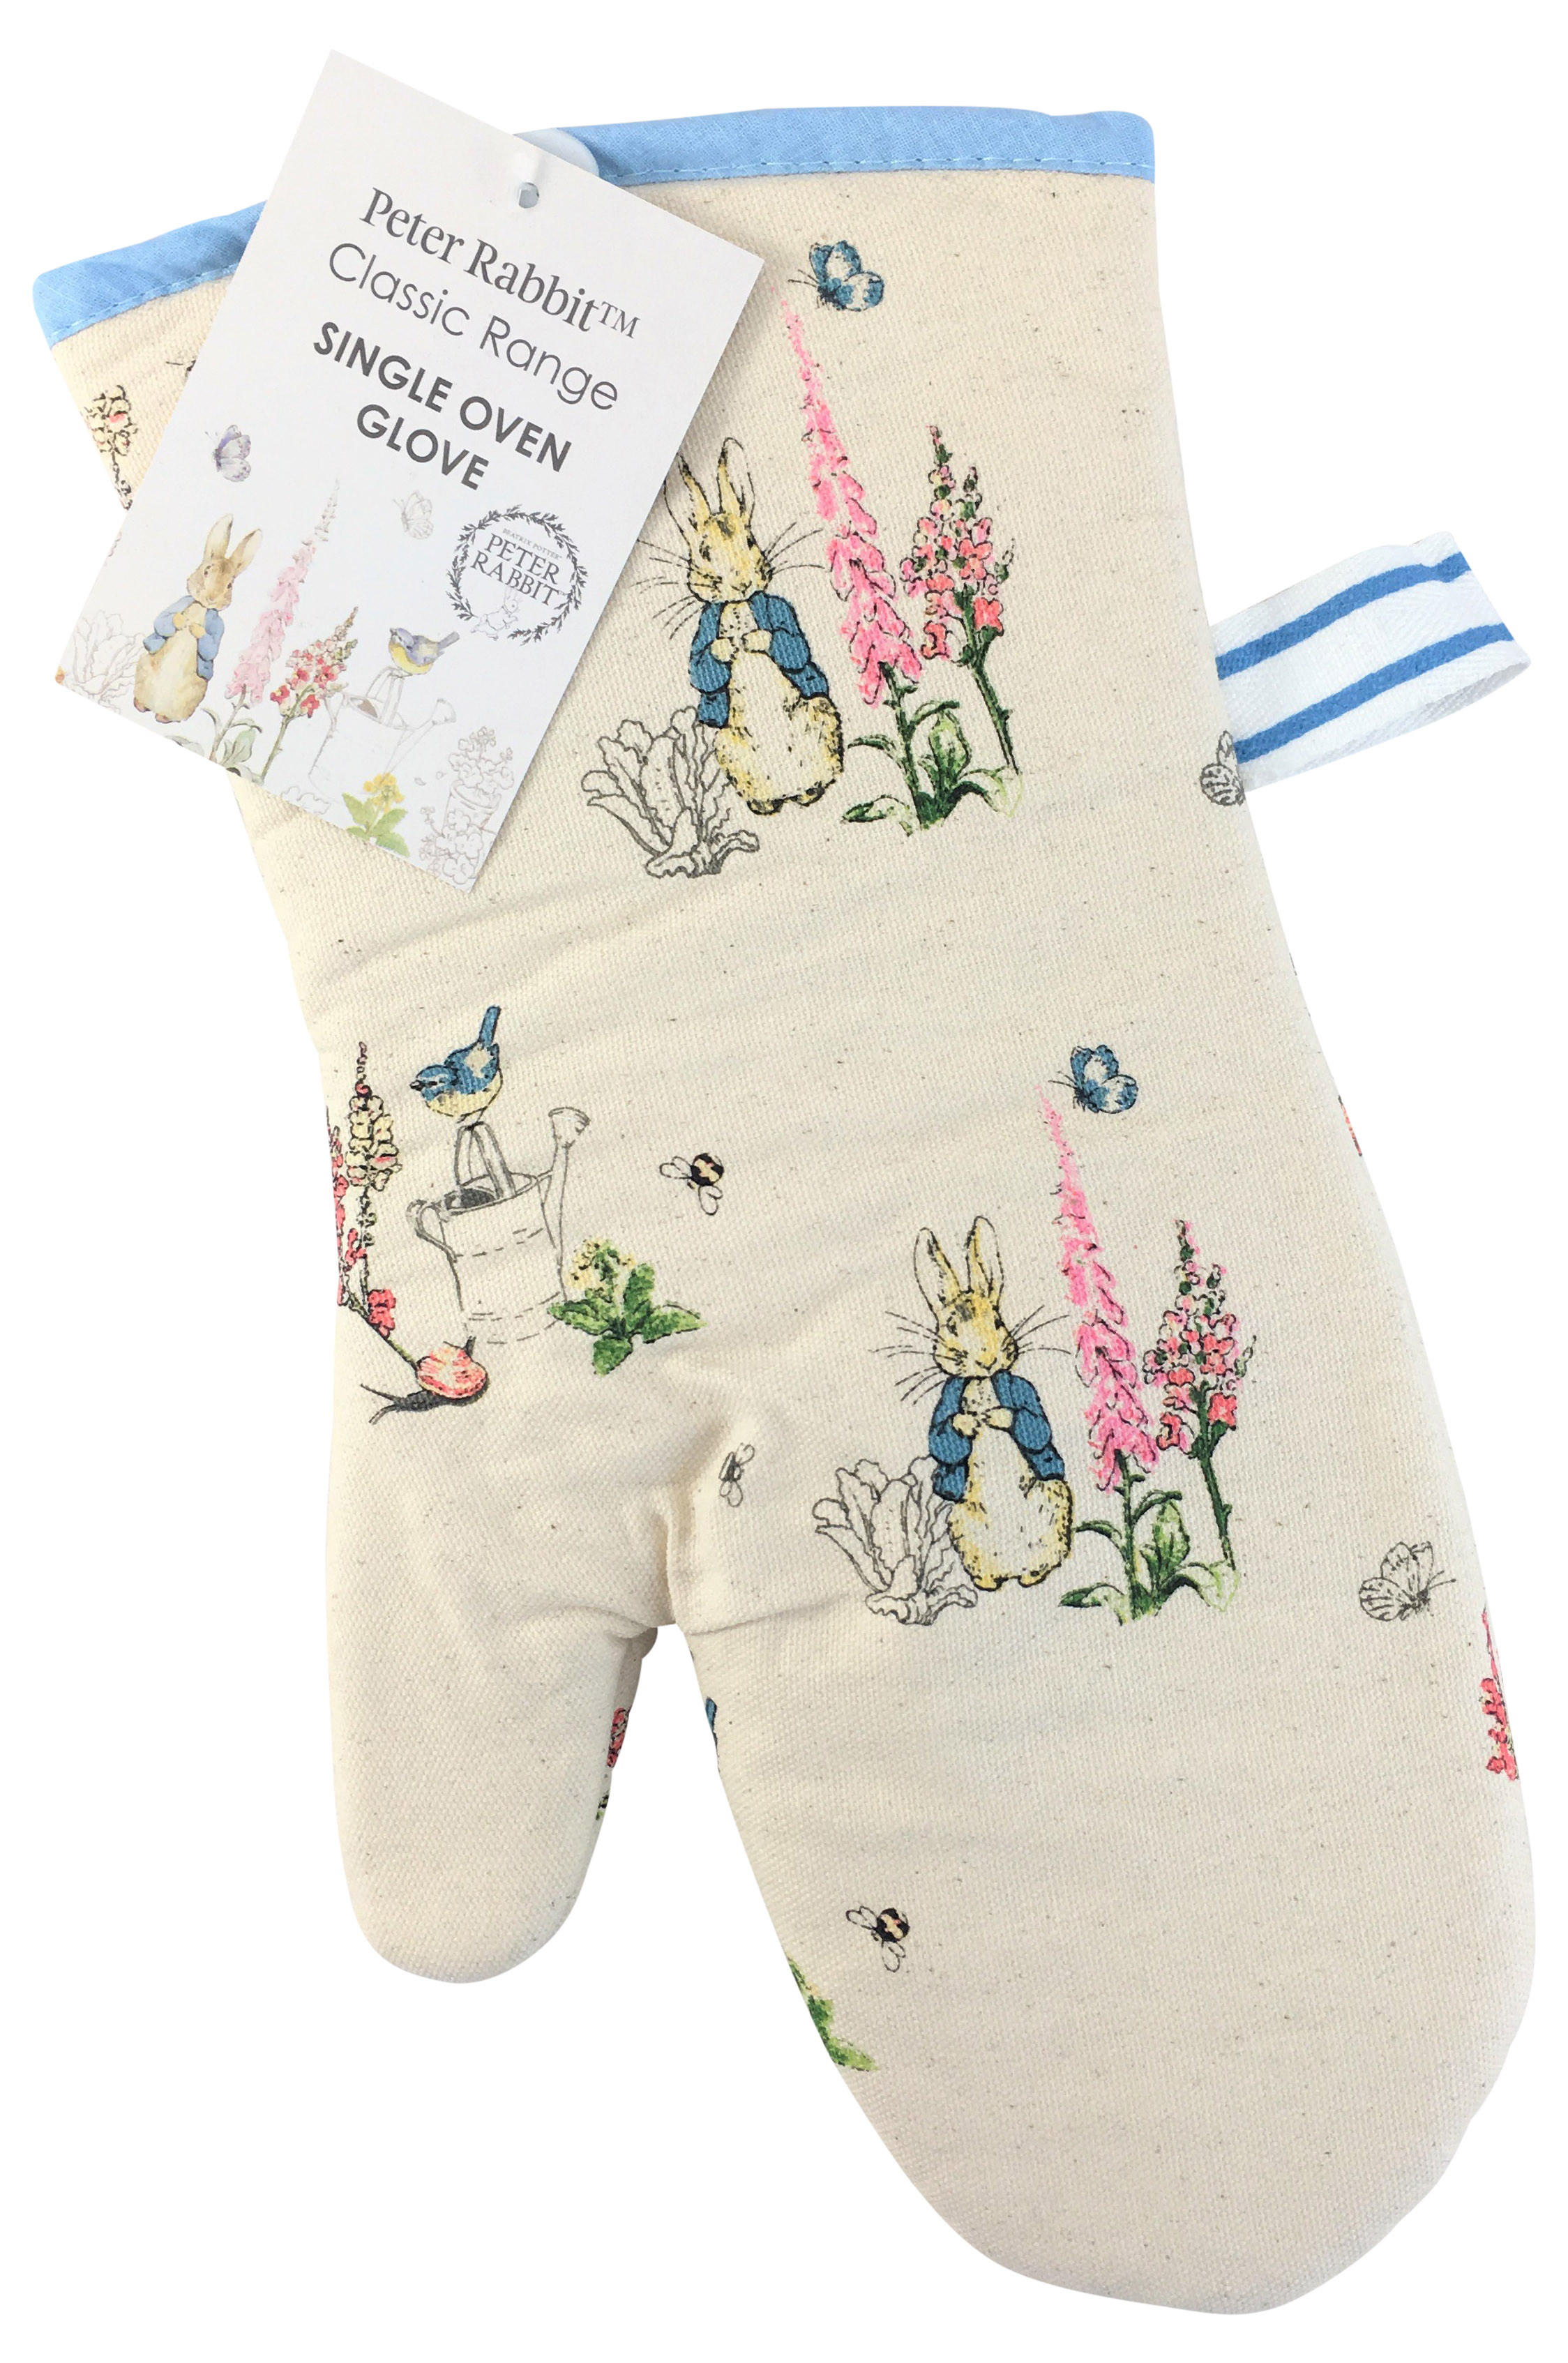 Peter Rabbit Single Oven Glove